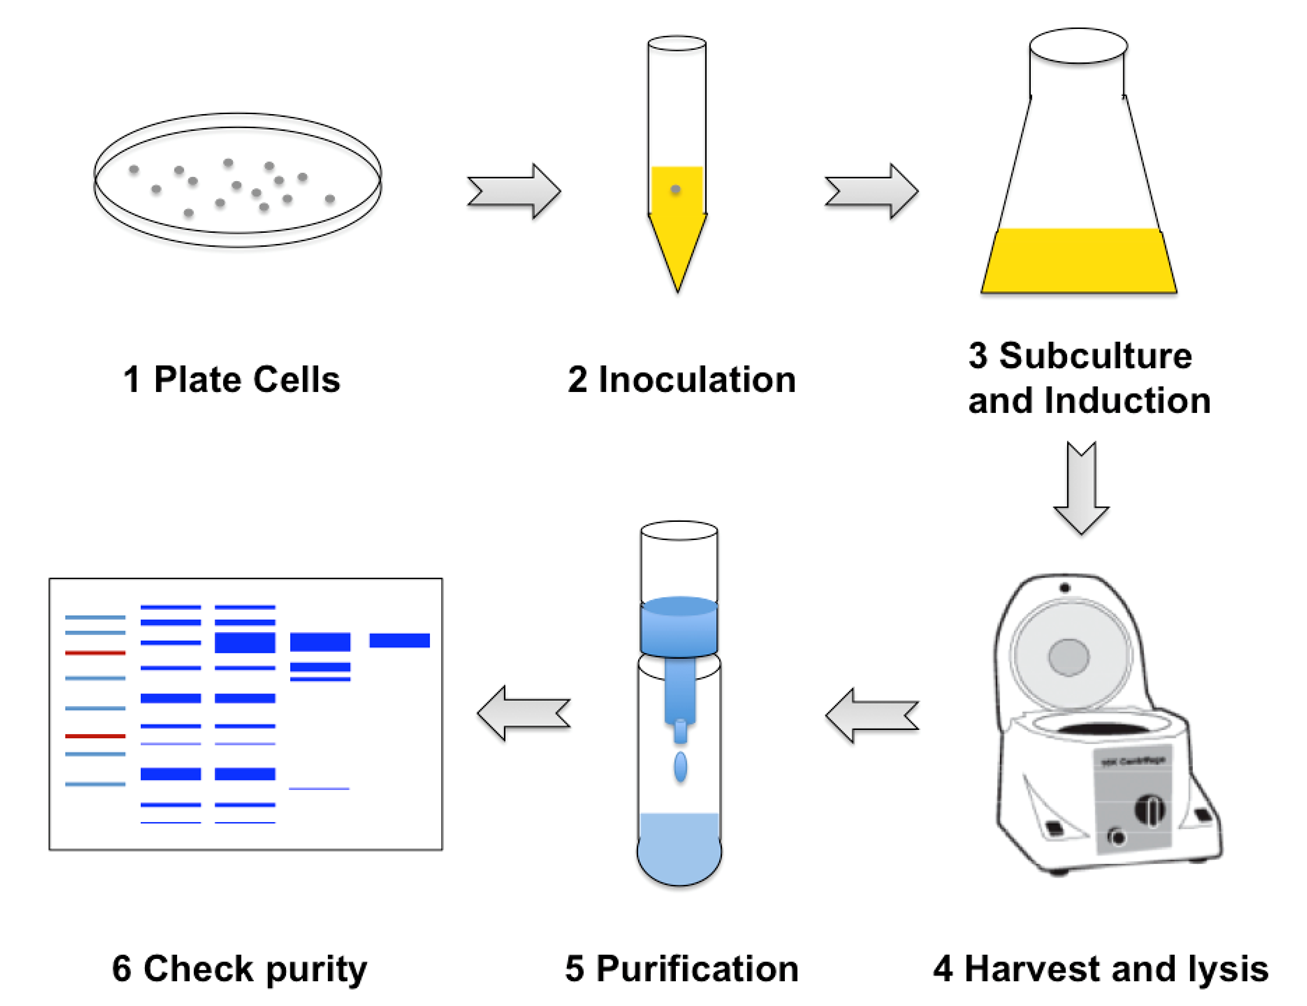 Overview of our Biochemistry module - protein expression and purification.